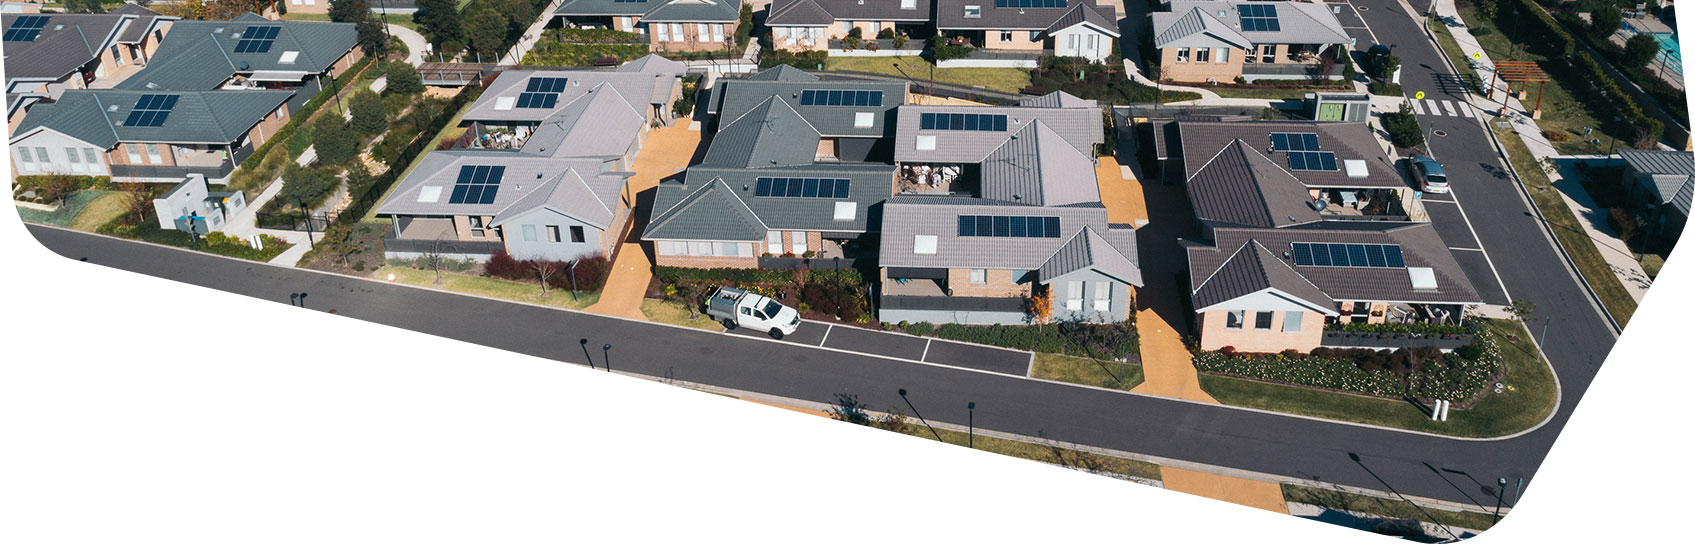 Total Construction - Anglicare Retirement Villages - The Ponds, NSW